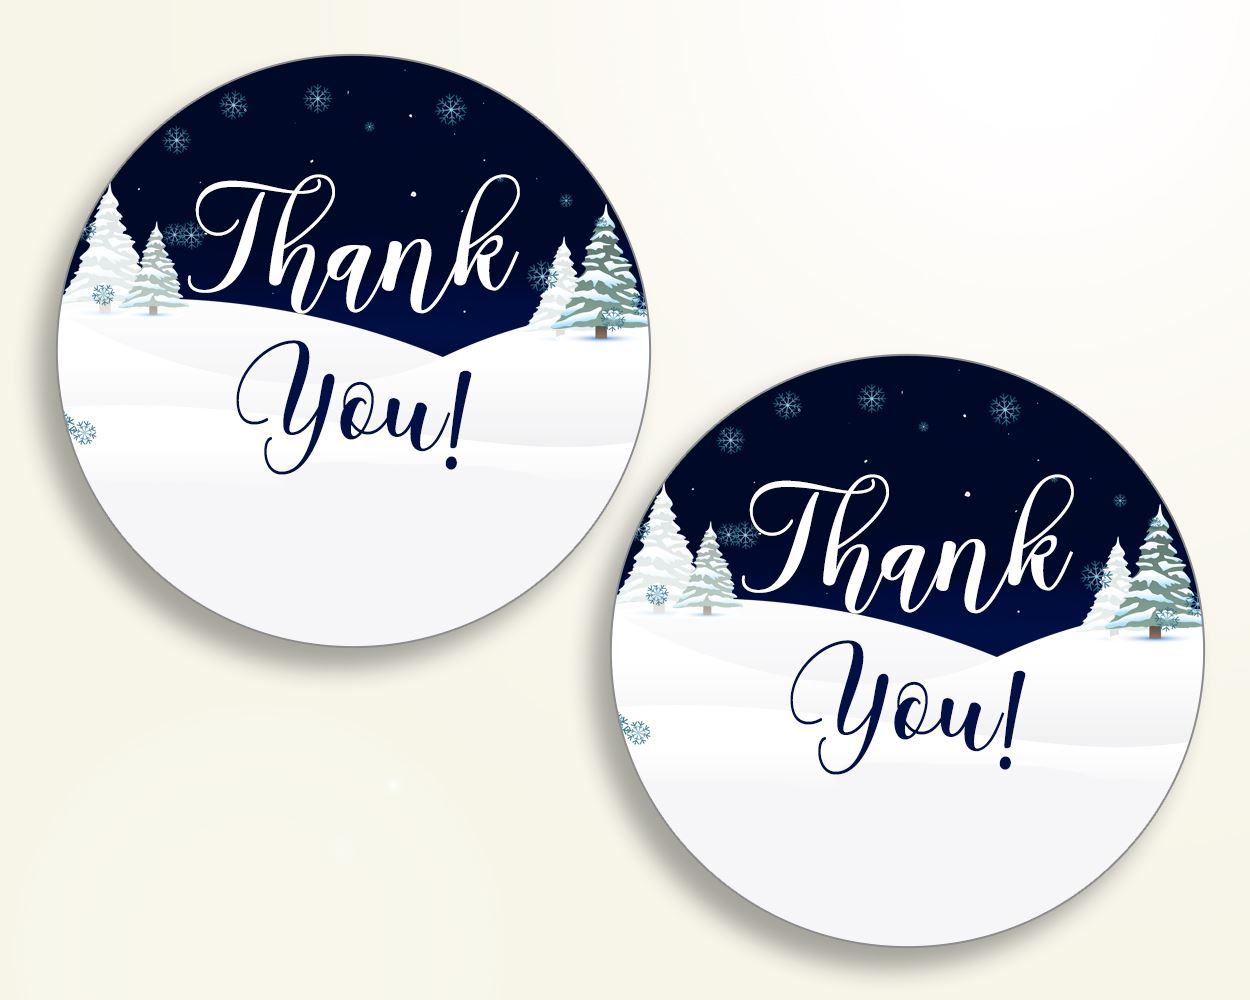 Favor Tags Baby Shower Favor Tags Winter Baby Shower Favor Tags Baby Shower Winter Favor Tags Blue White prints party stuff 3E6QO - Digital Product